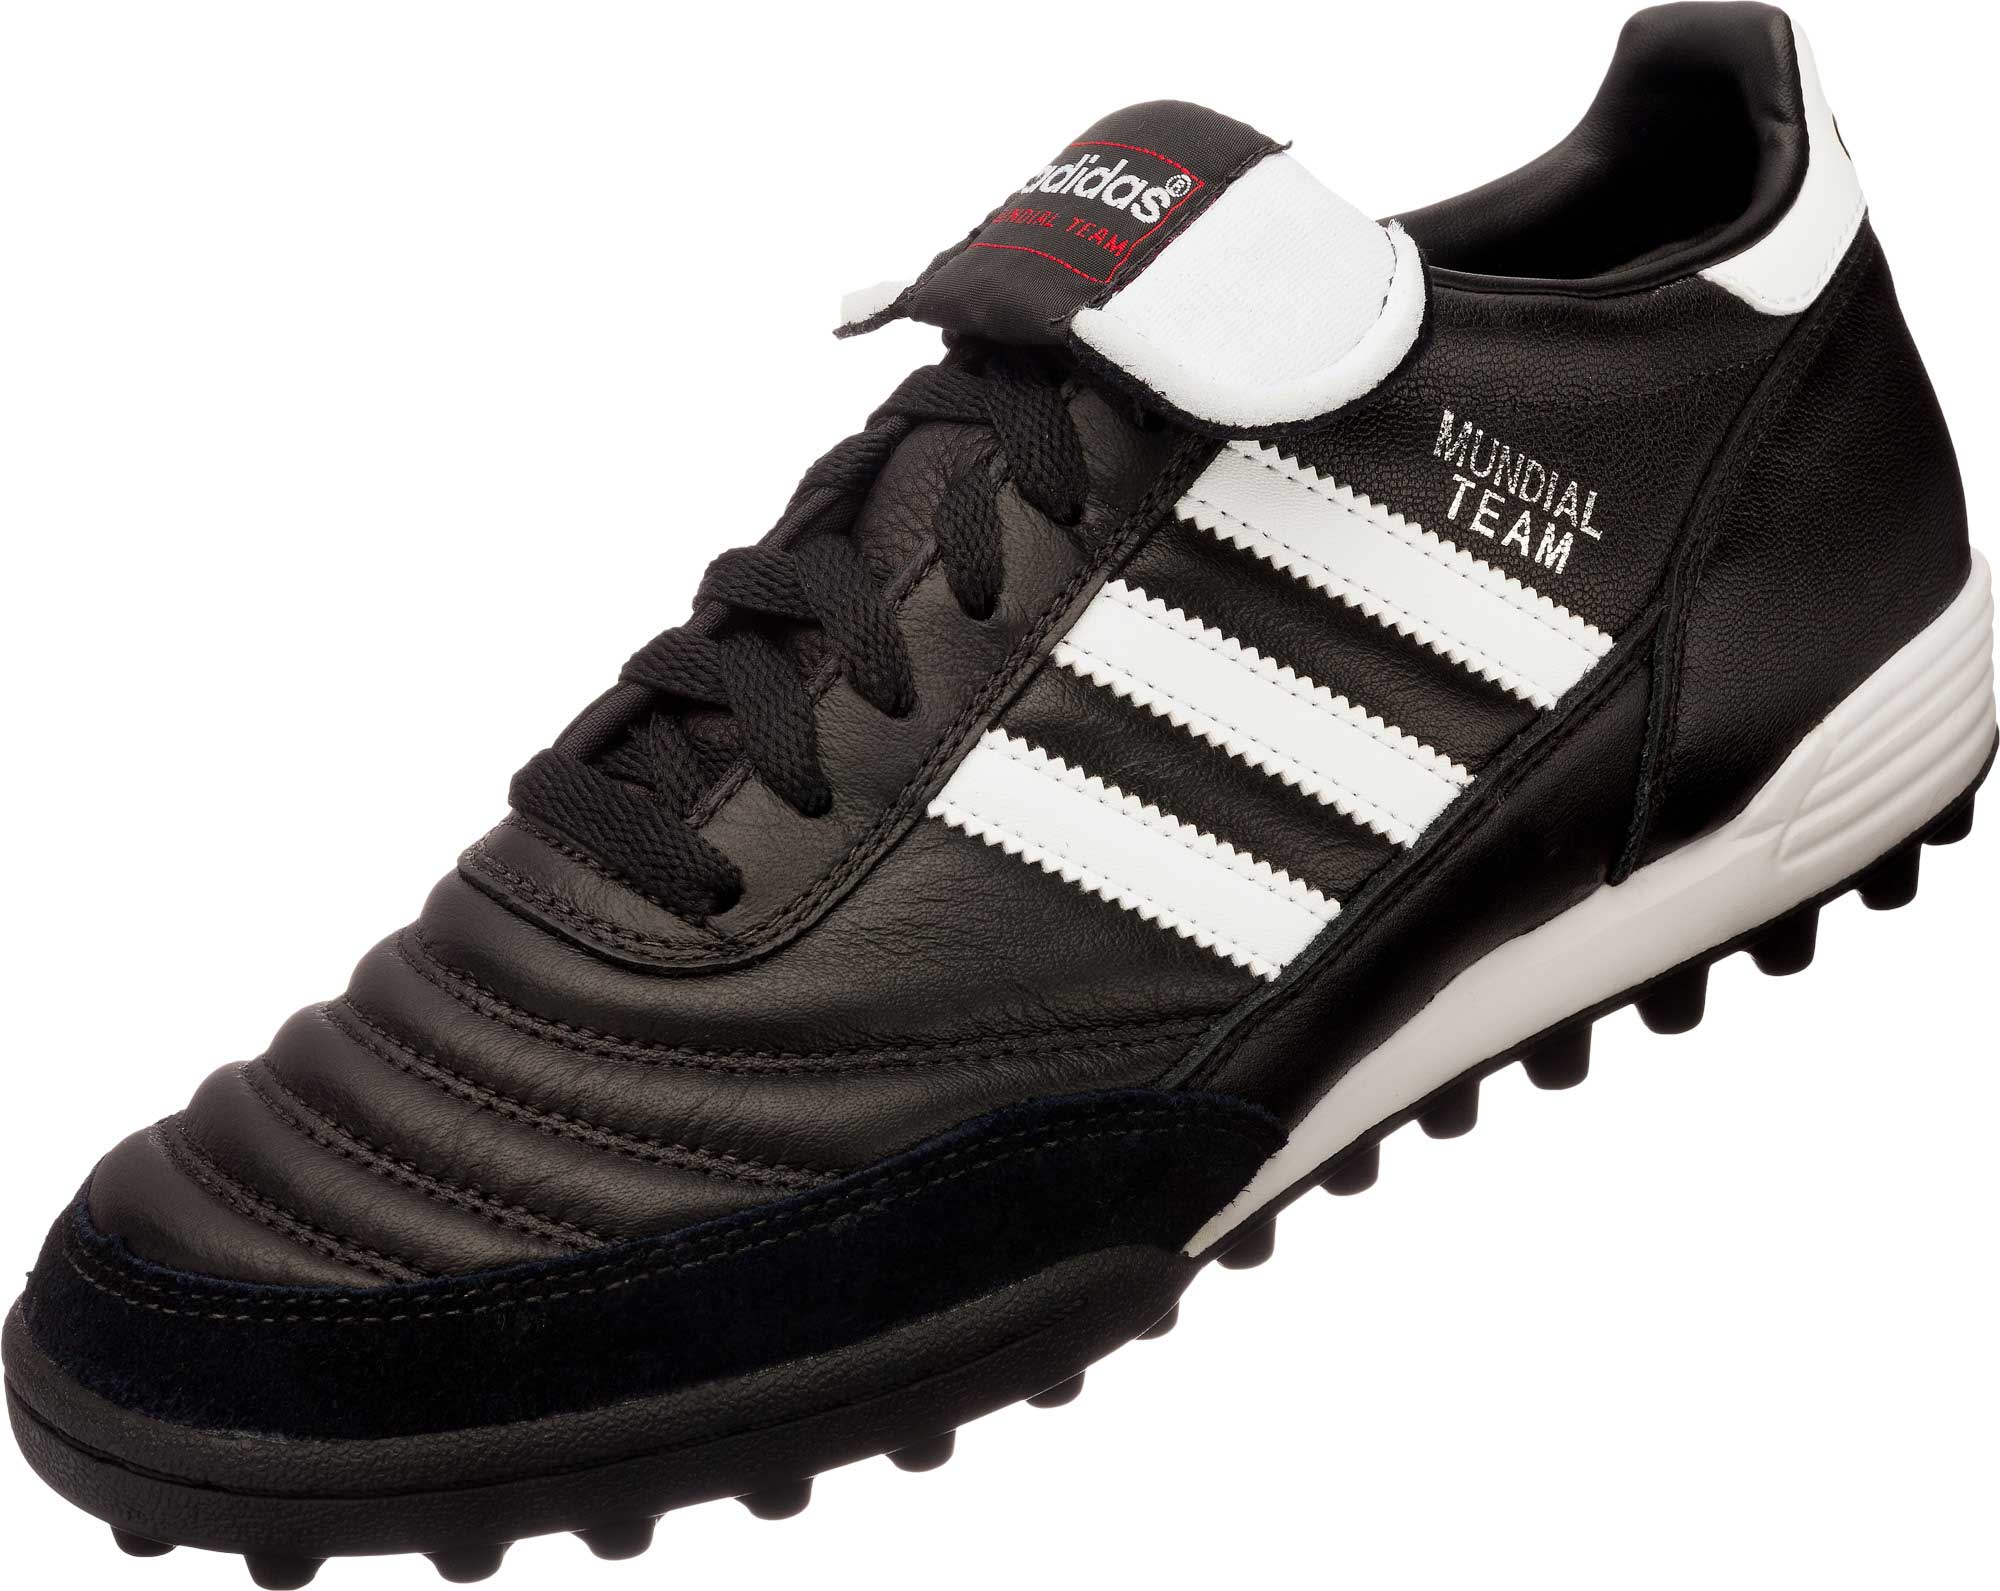 Womens Turf Shoes Clearance